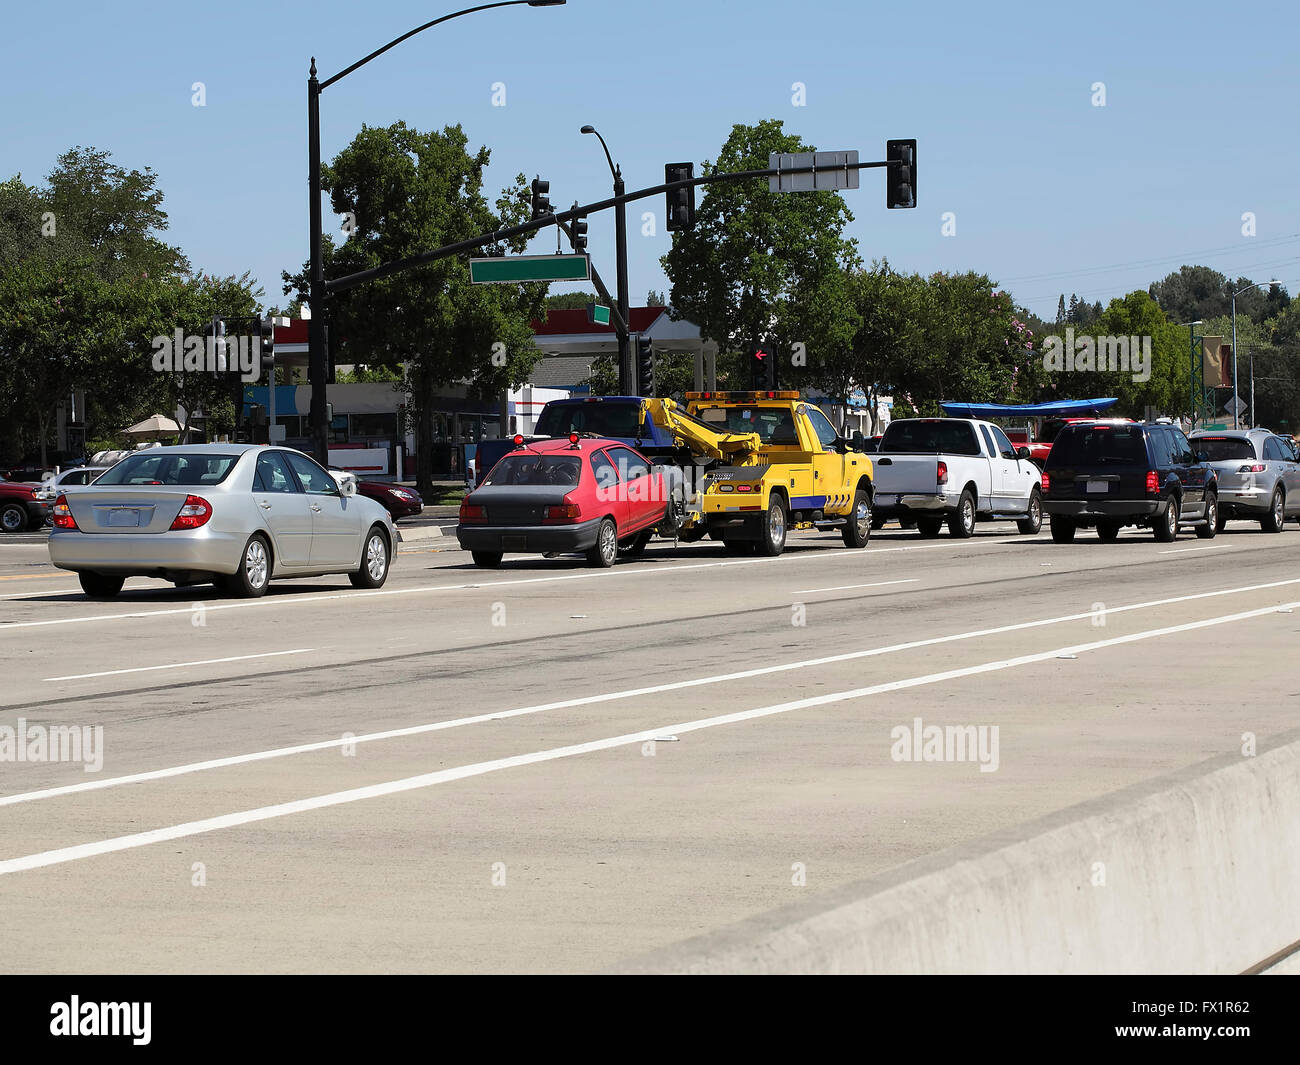 Yellow Tow Truck Hauling Car In Traffic - Stock Image